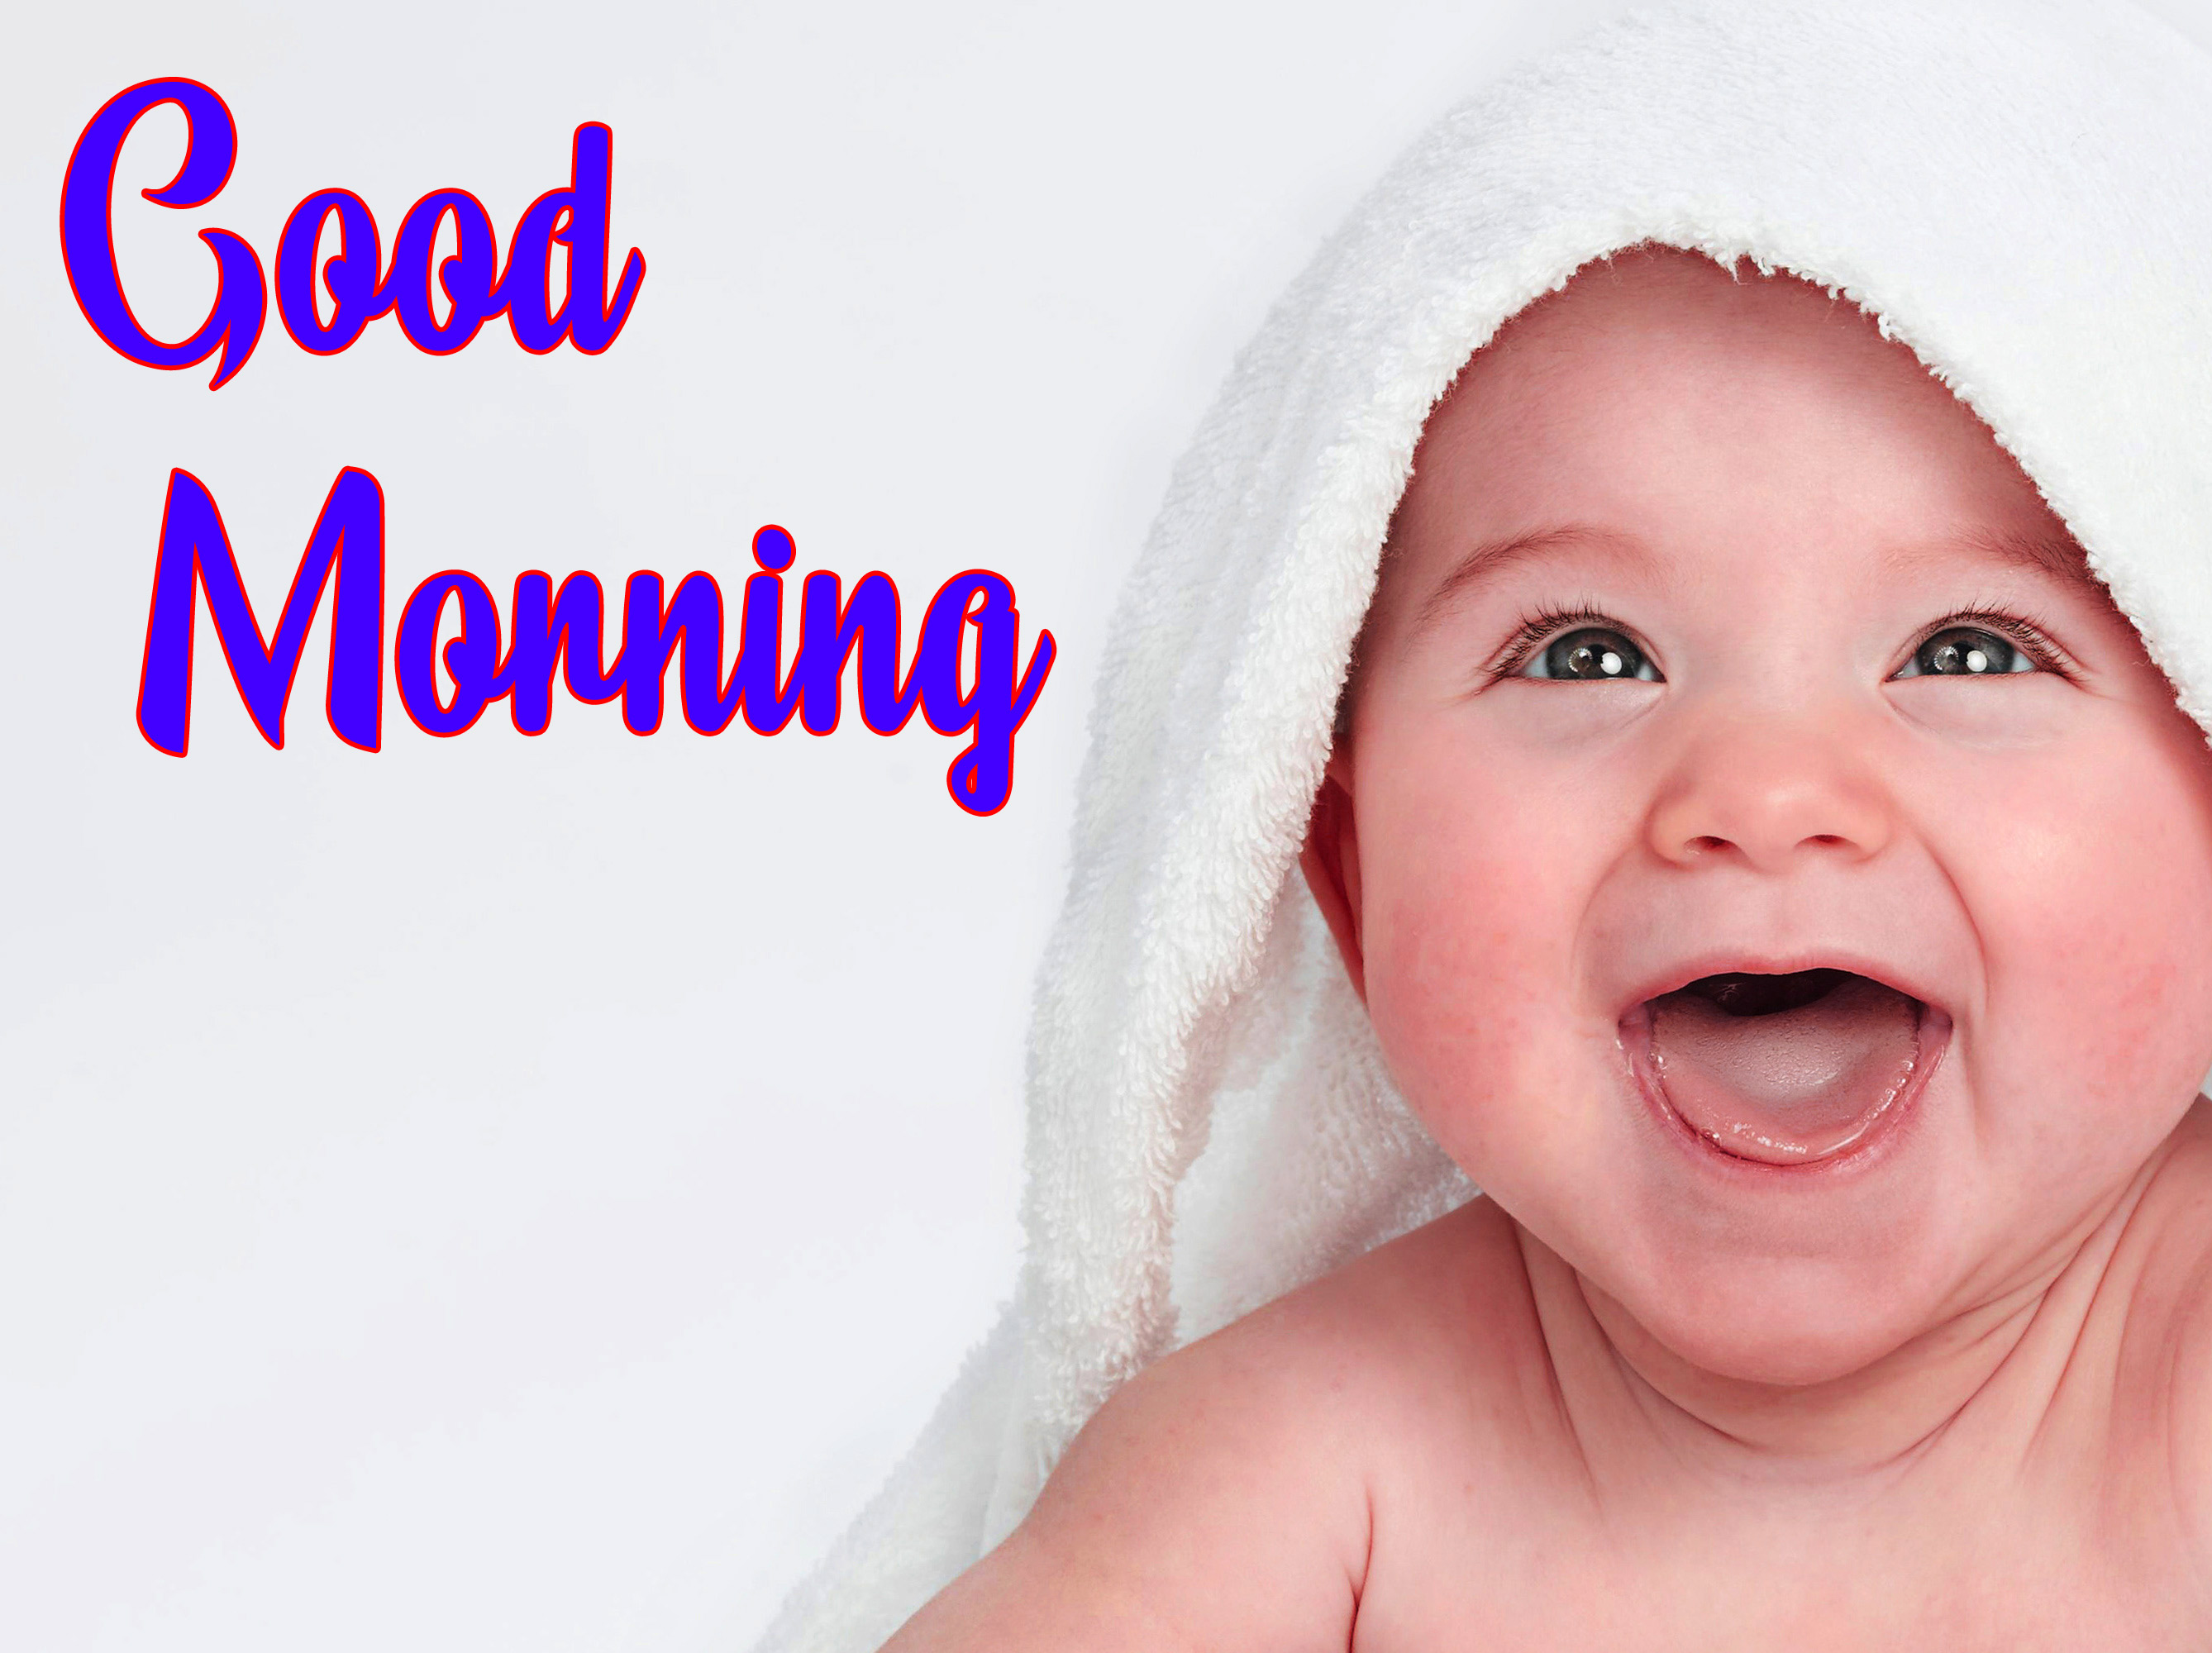 Funny Good Morning Wishes Wallpaper Pics